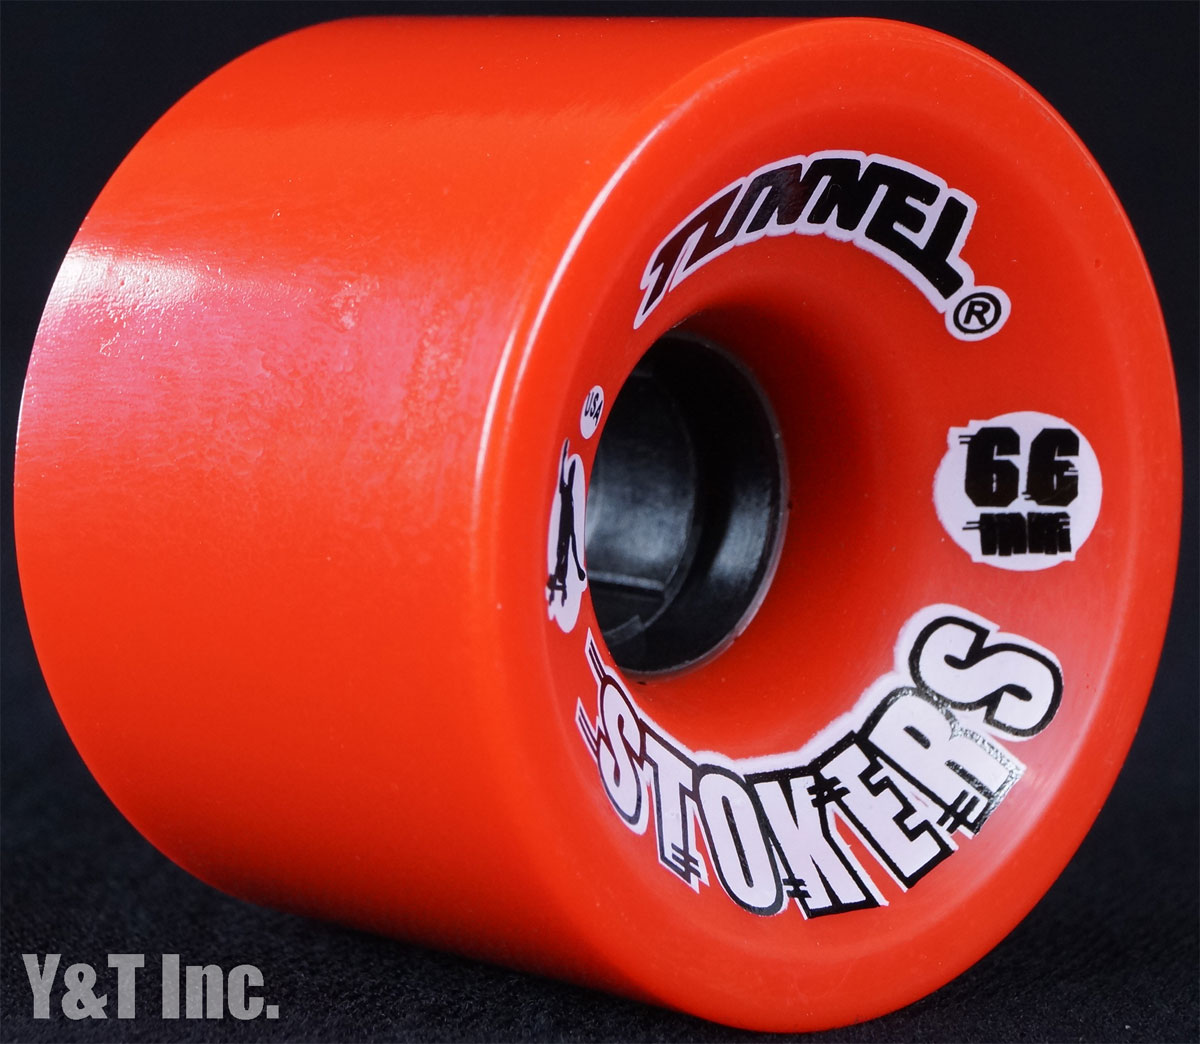 TUNNEL STOKERS 66mm 78a Red 1